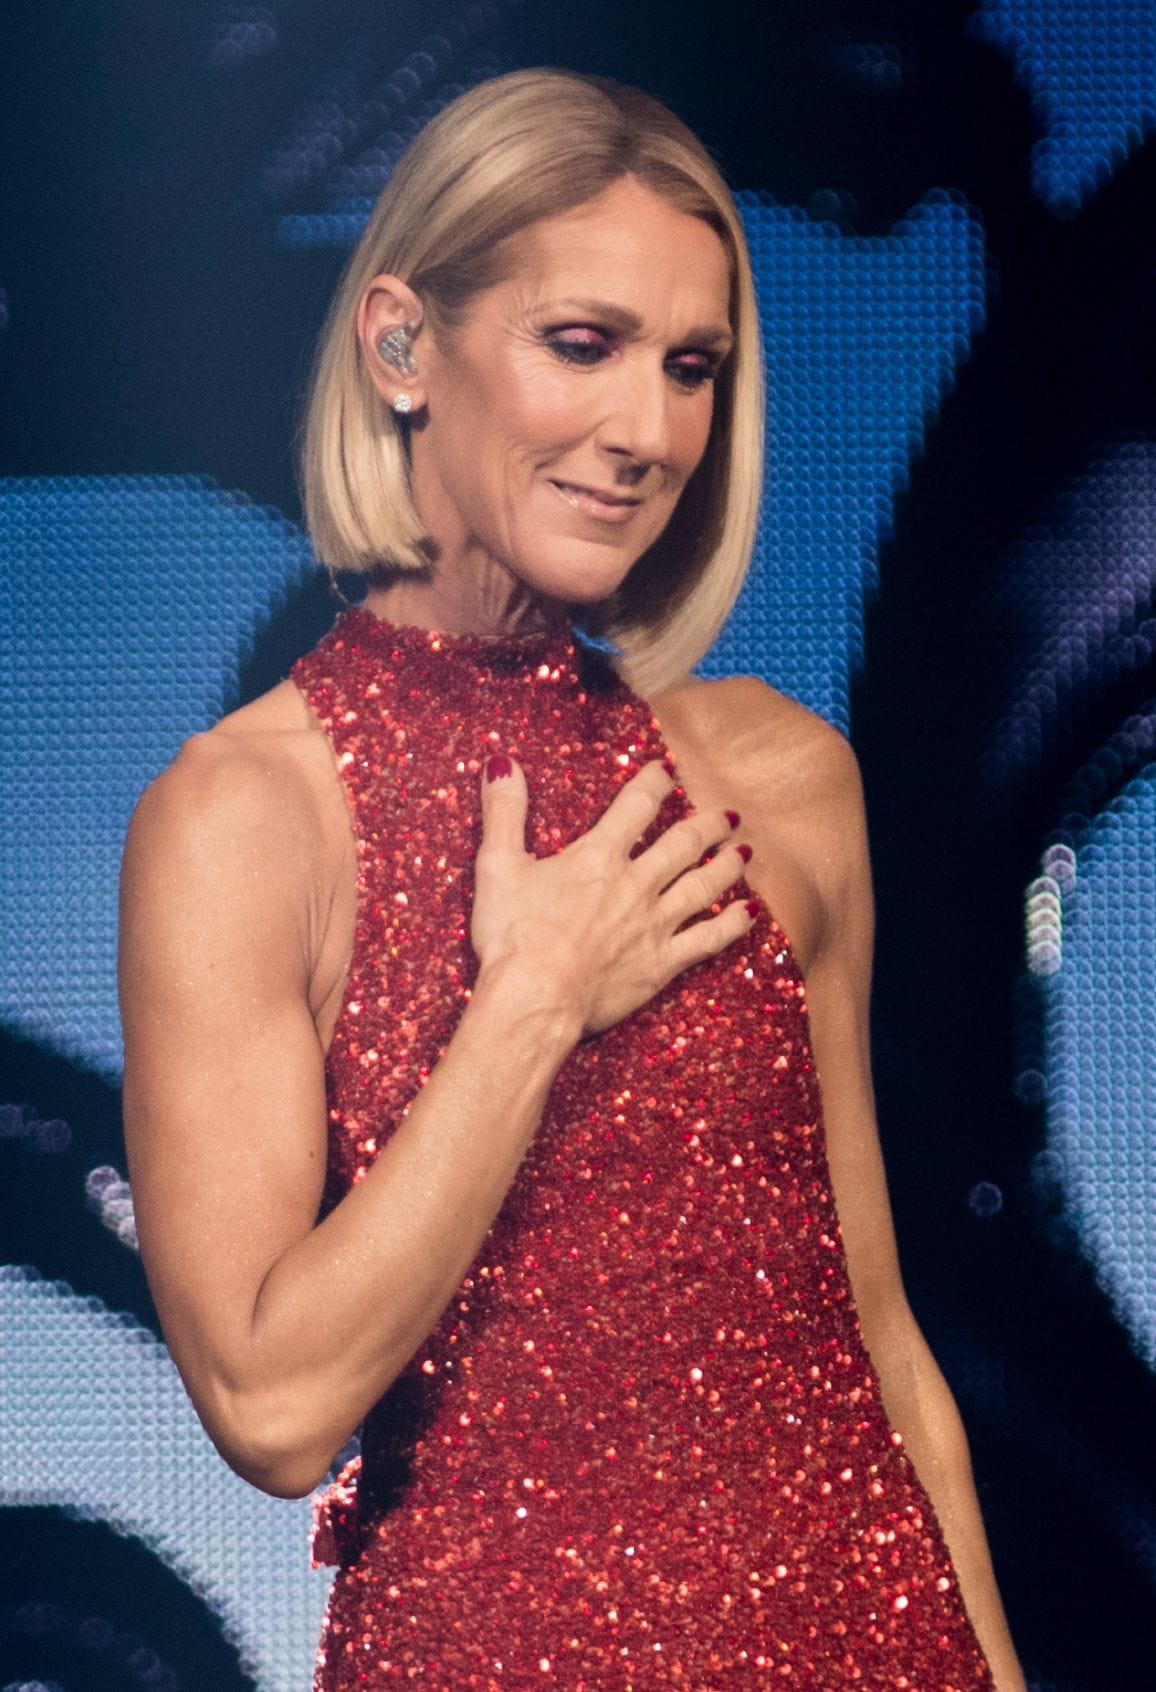 Celine Dion's twins turn 9 and she celebrates with rare photos